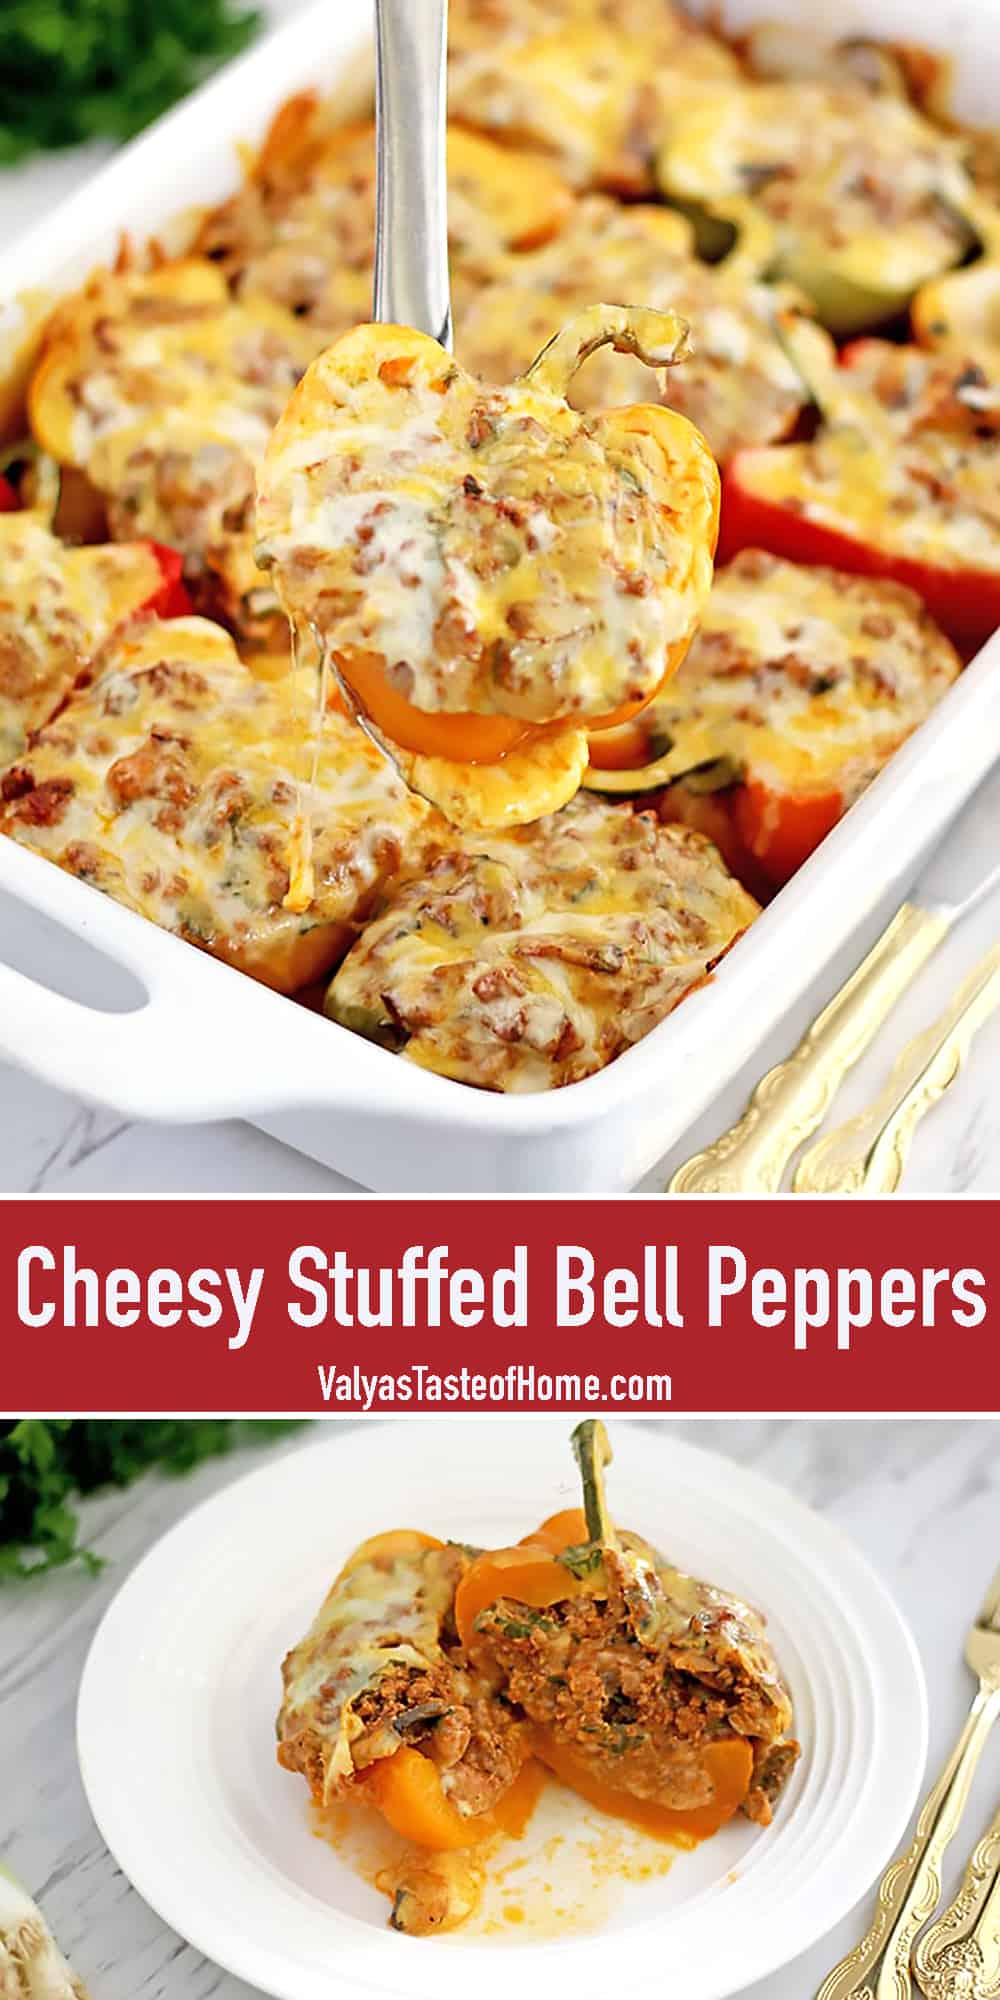 Need a snappy dinner idea? I've got this wonderful Cheesy Stuffed Bell Peppers dish for you today that goes along with any main side such as mashed potatoes, pasta, rice, or buckwheat.